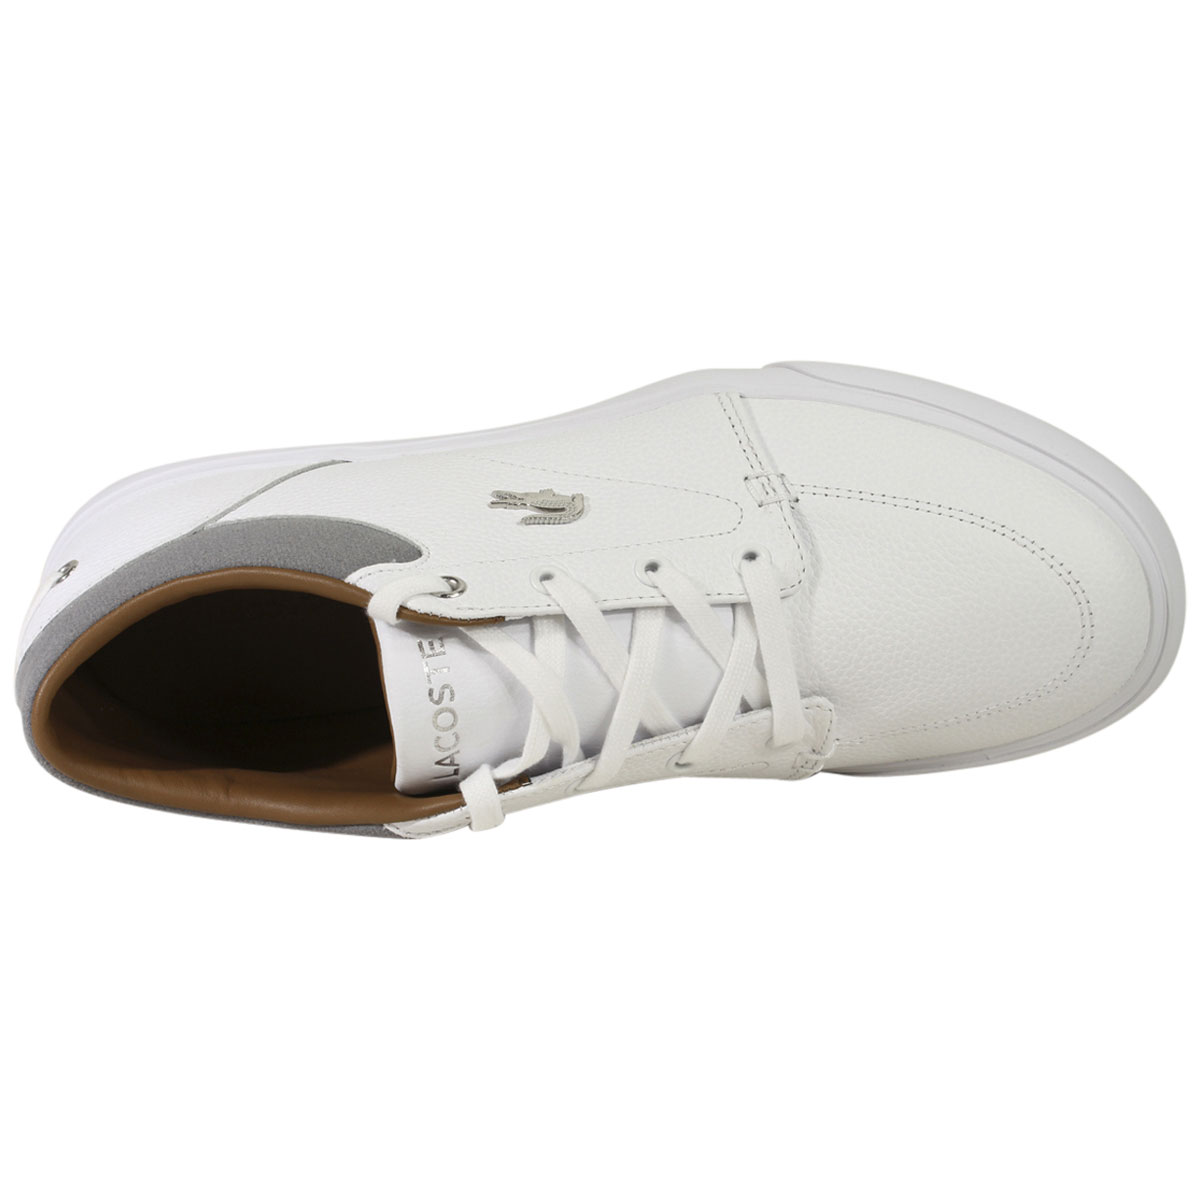 Lacoste-Men-039-s-Bayliss-118-Sneakers-Shoes thumbnail 21